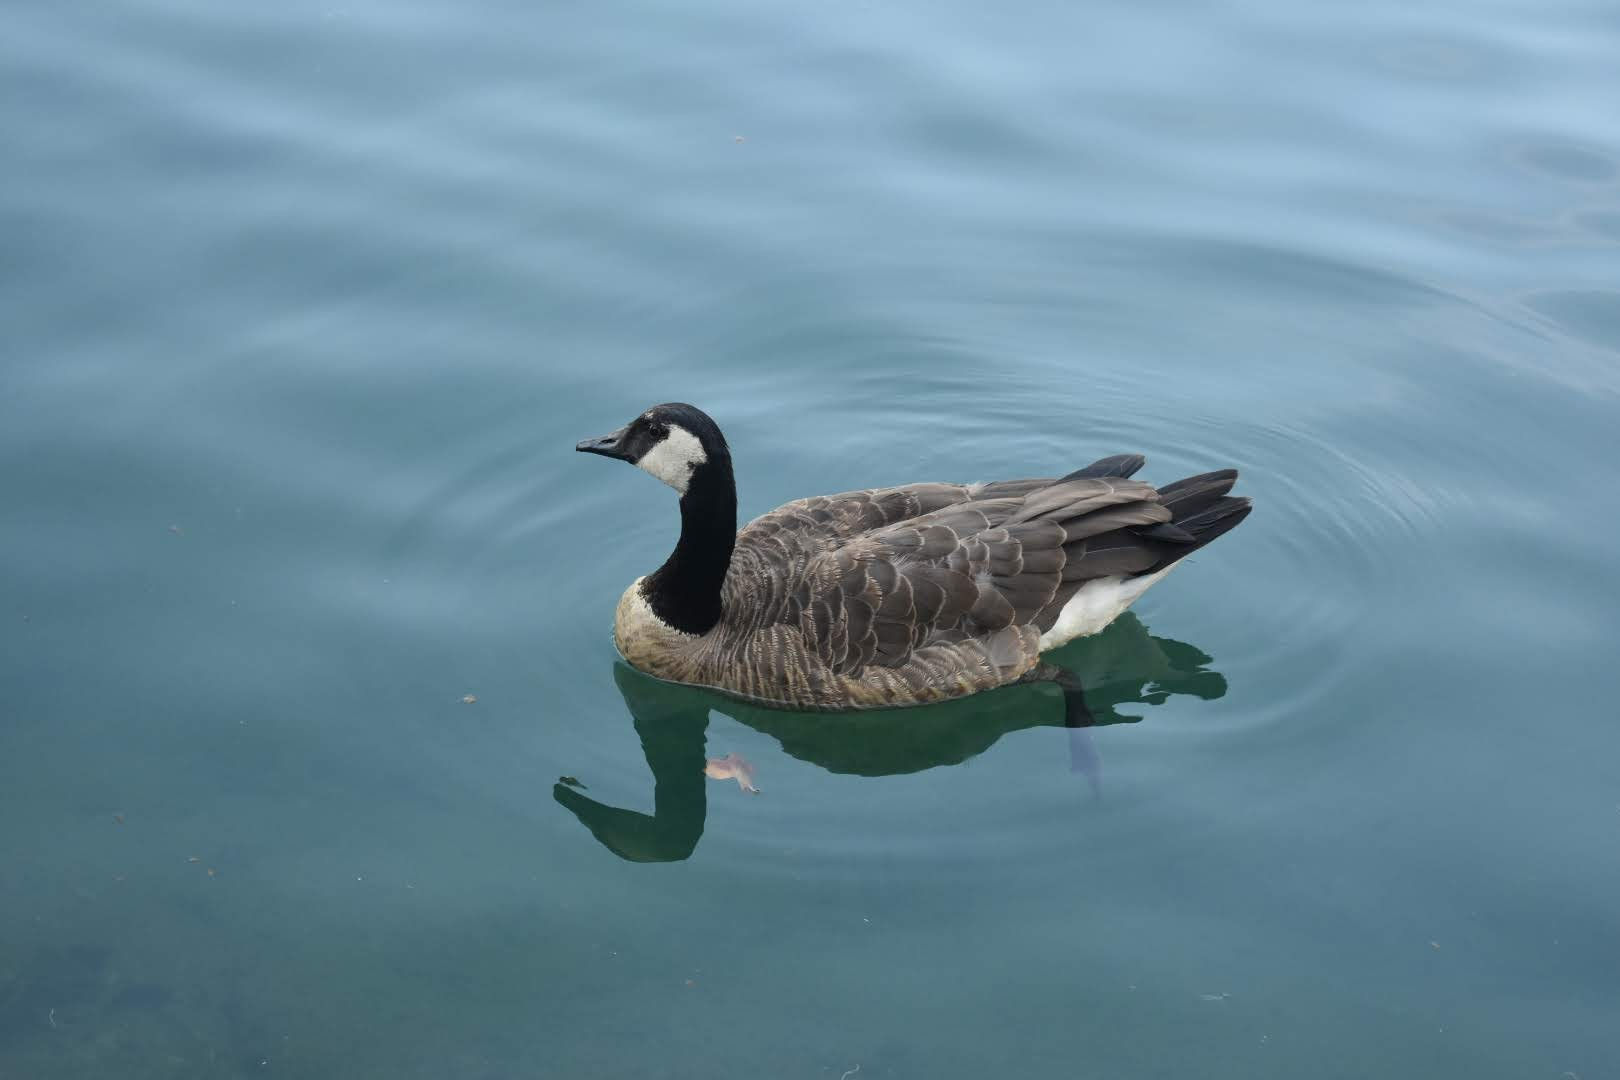 Adorable duck on the water